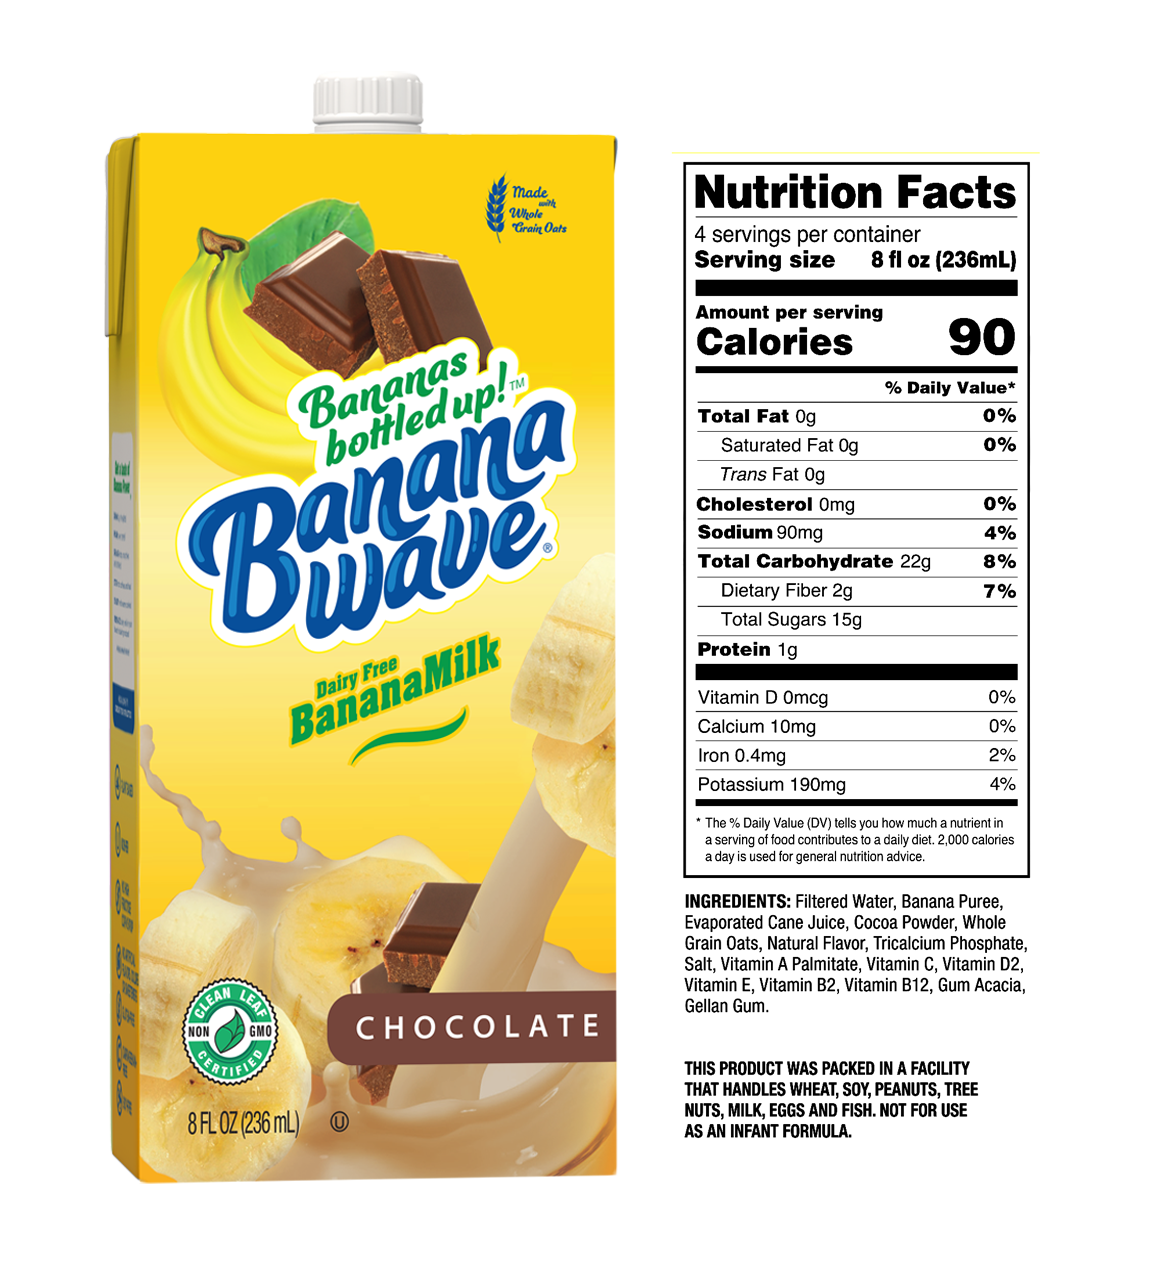 nutrition facts choc-tall.png